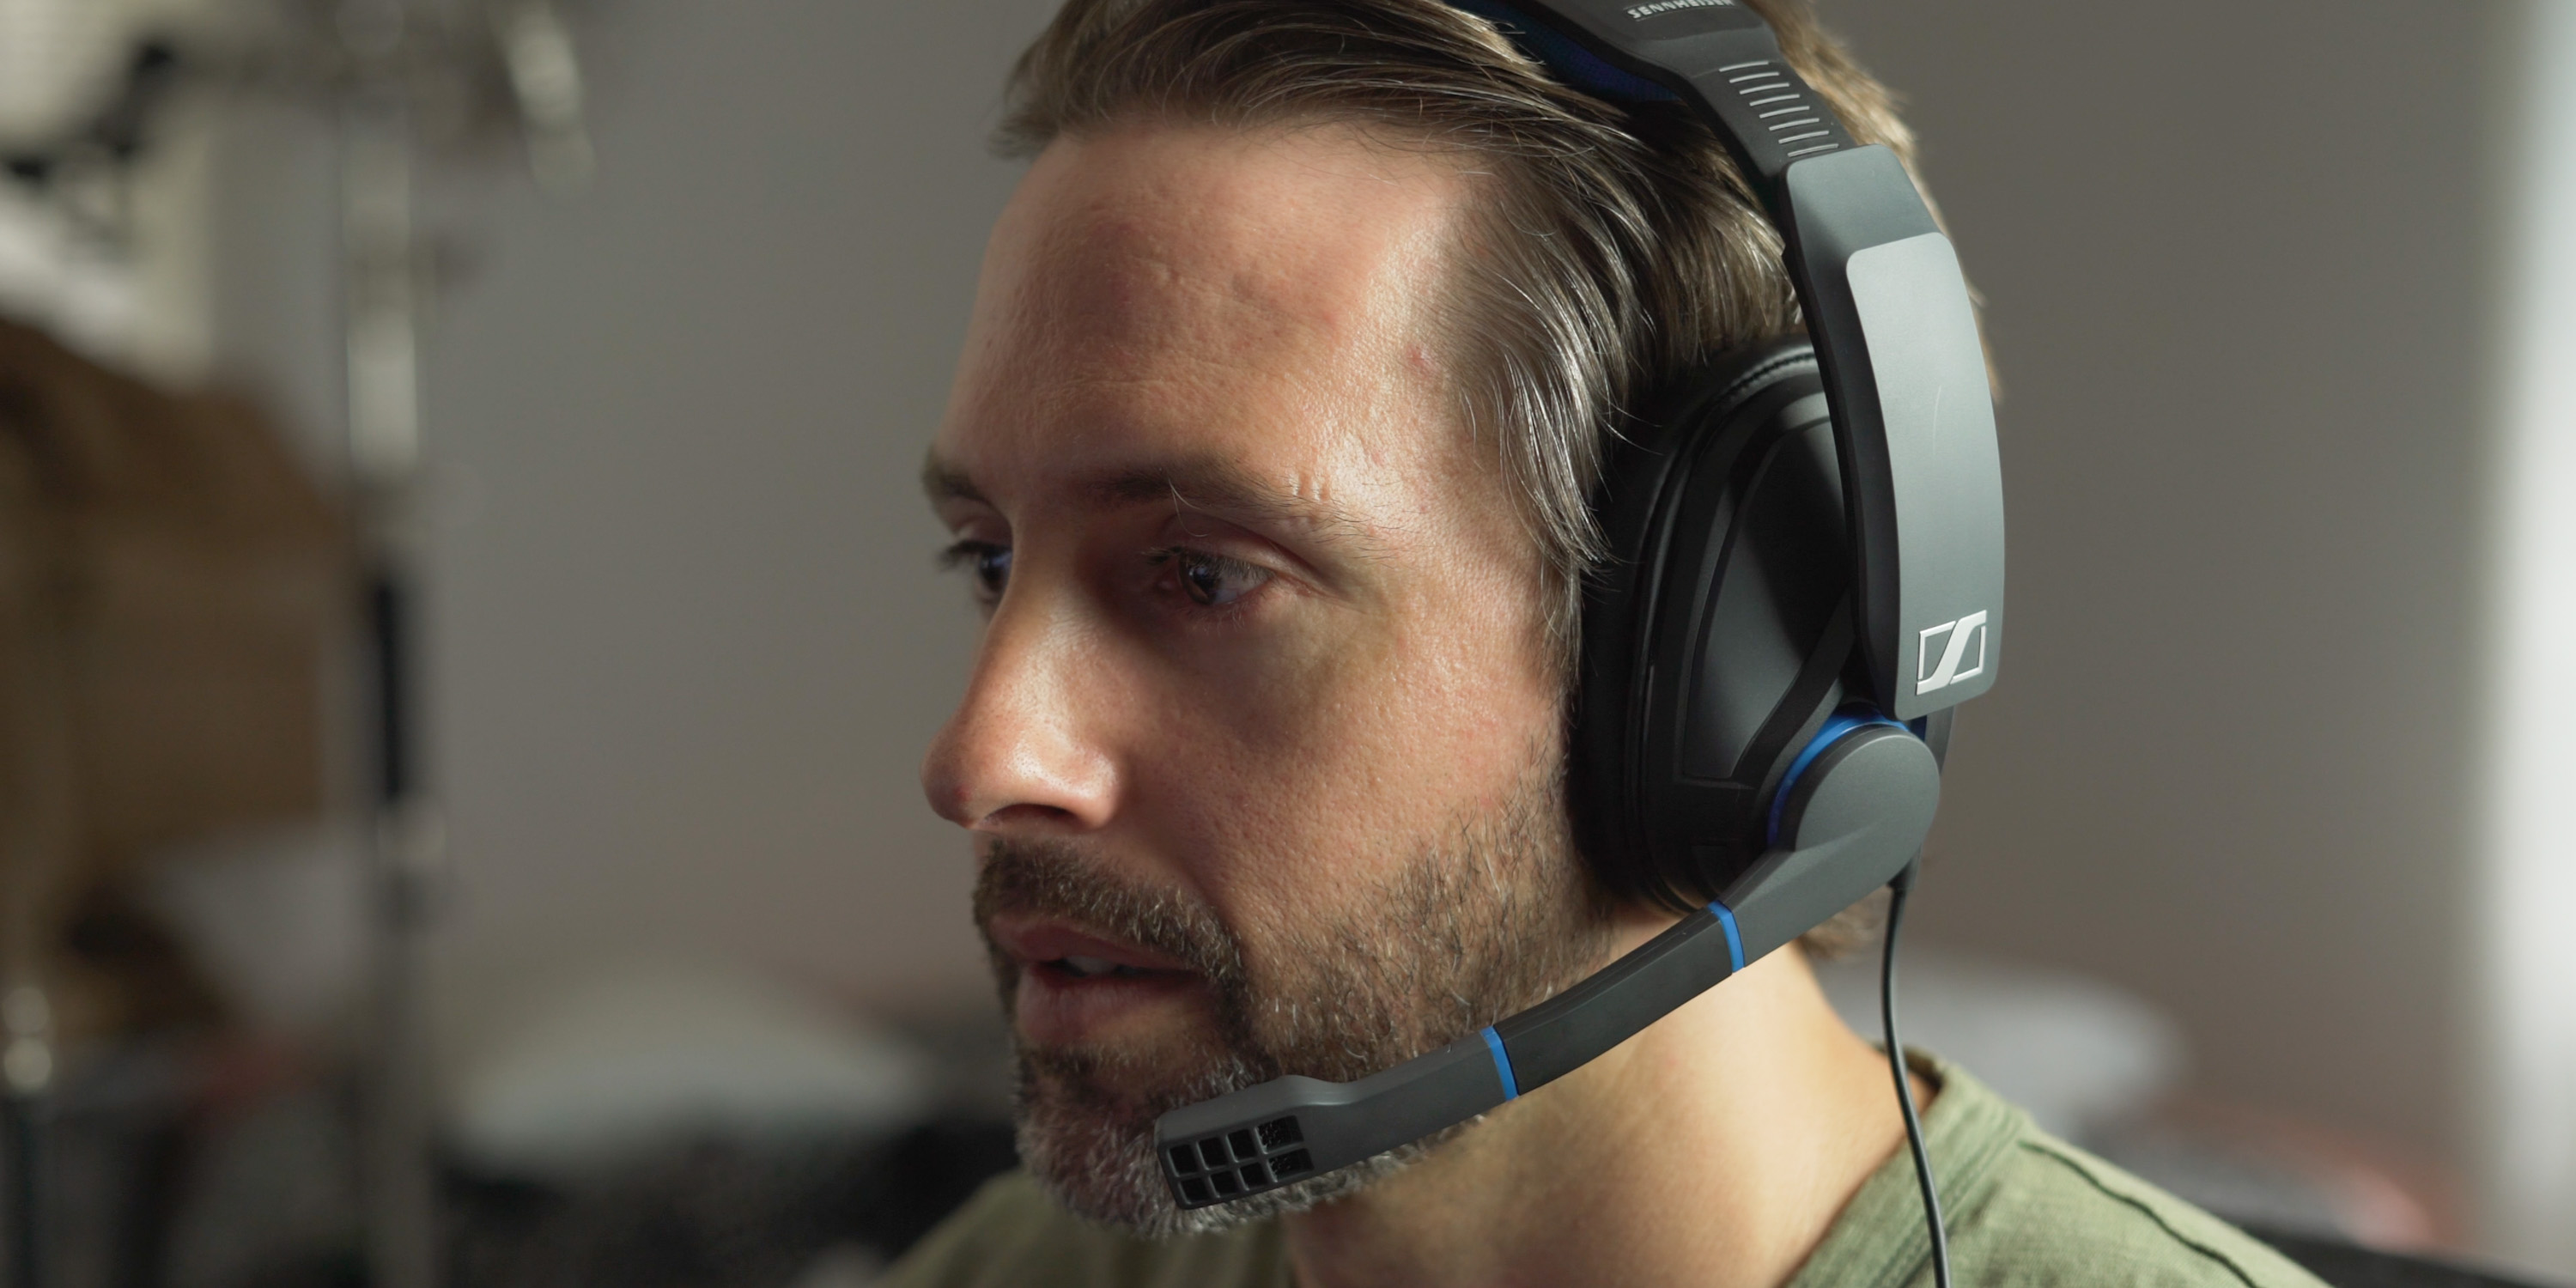 gaming with the GSP 300 gaming headset